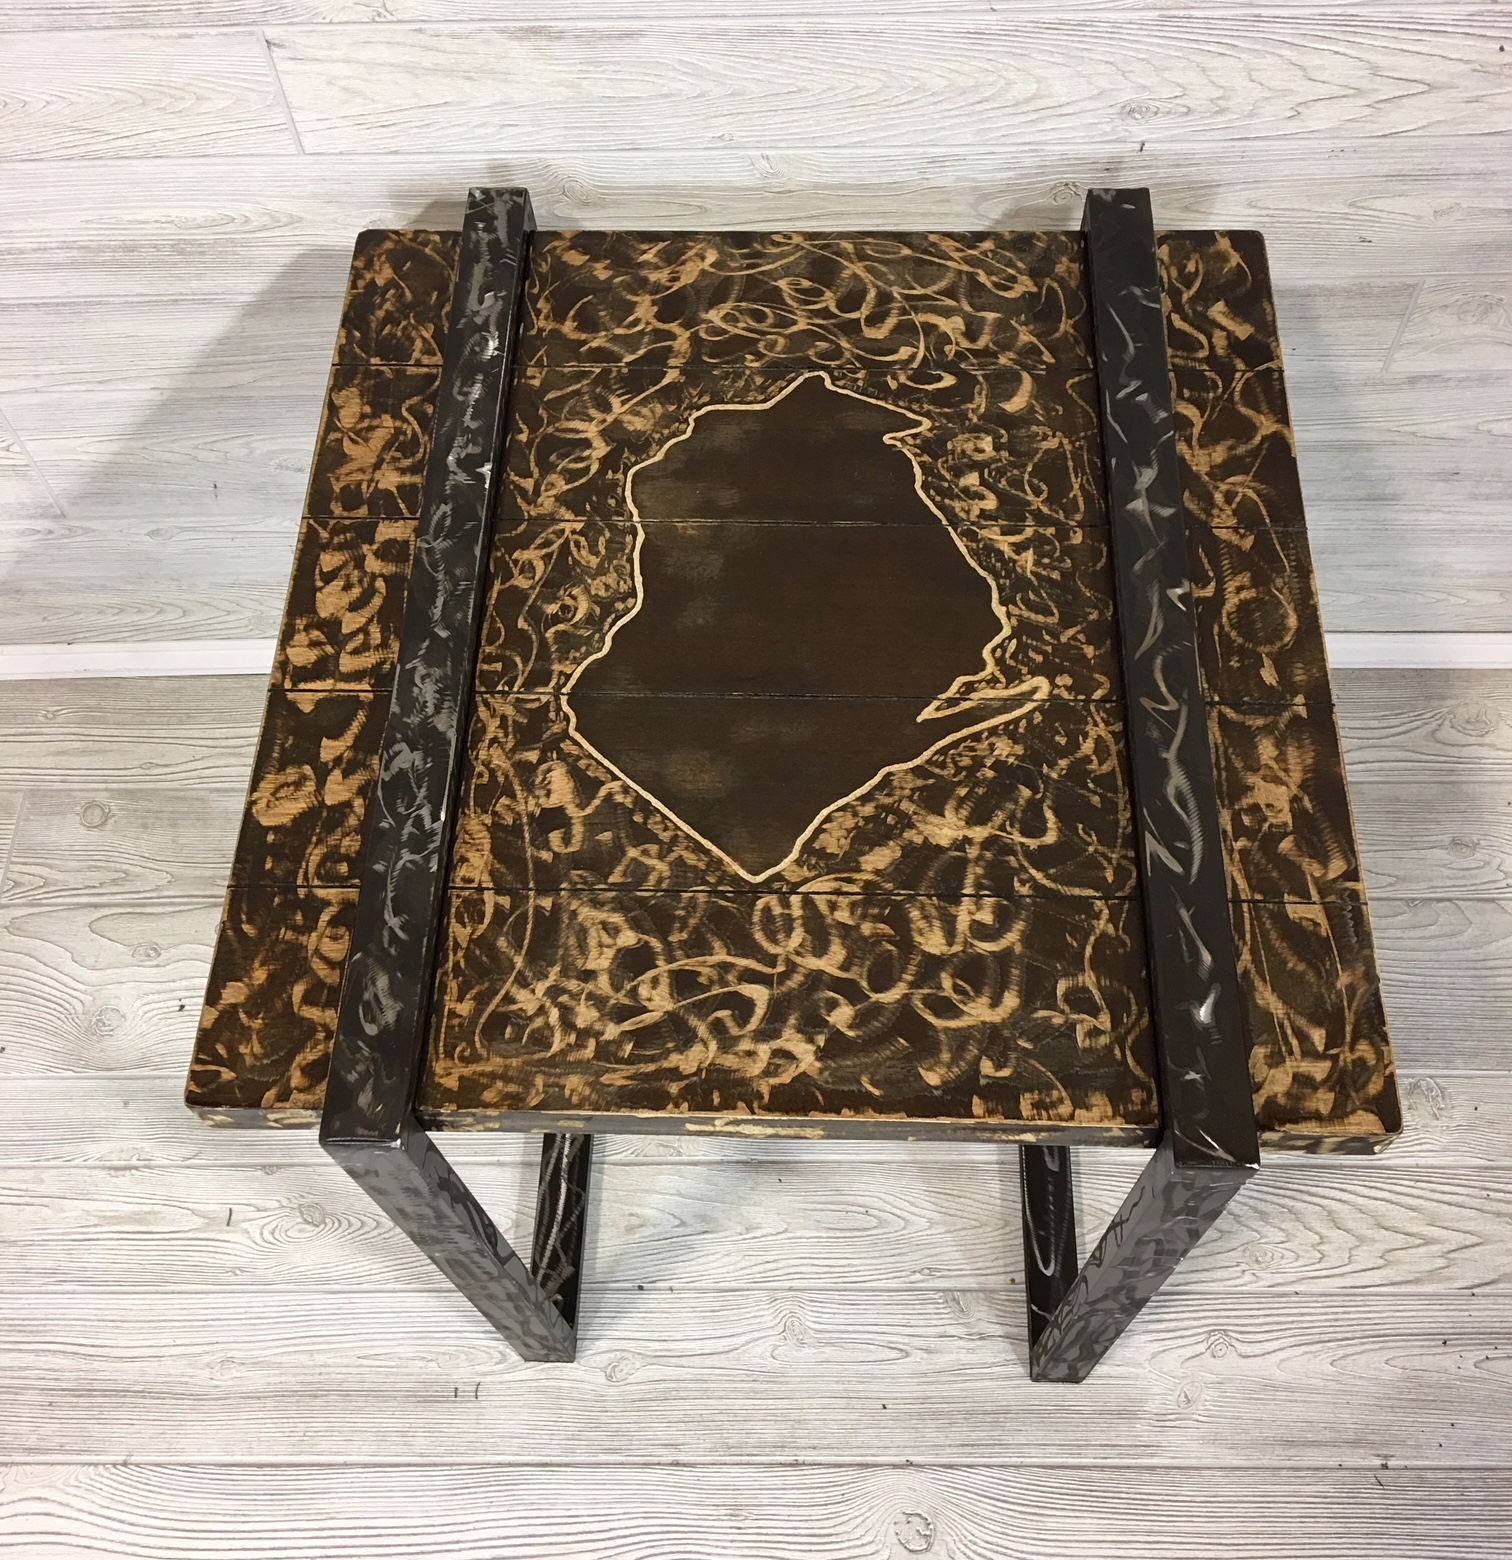 WI Steel and Wood End Table